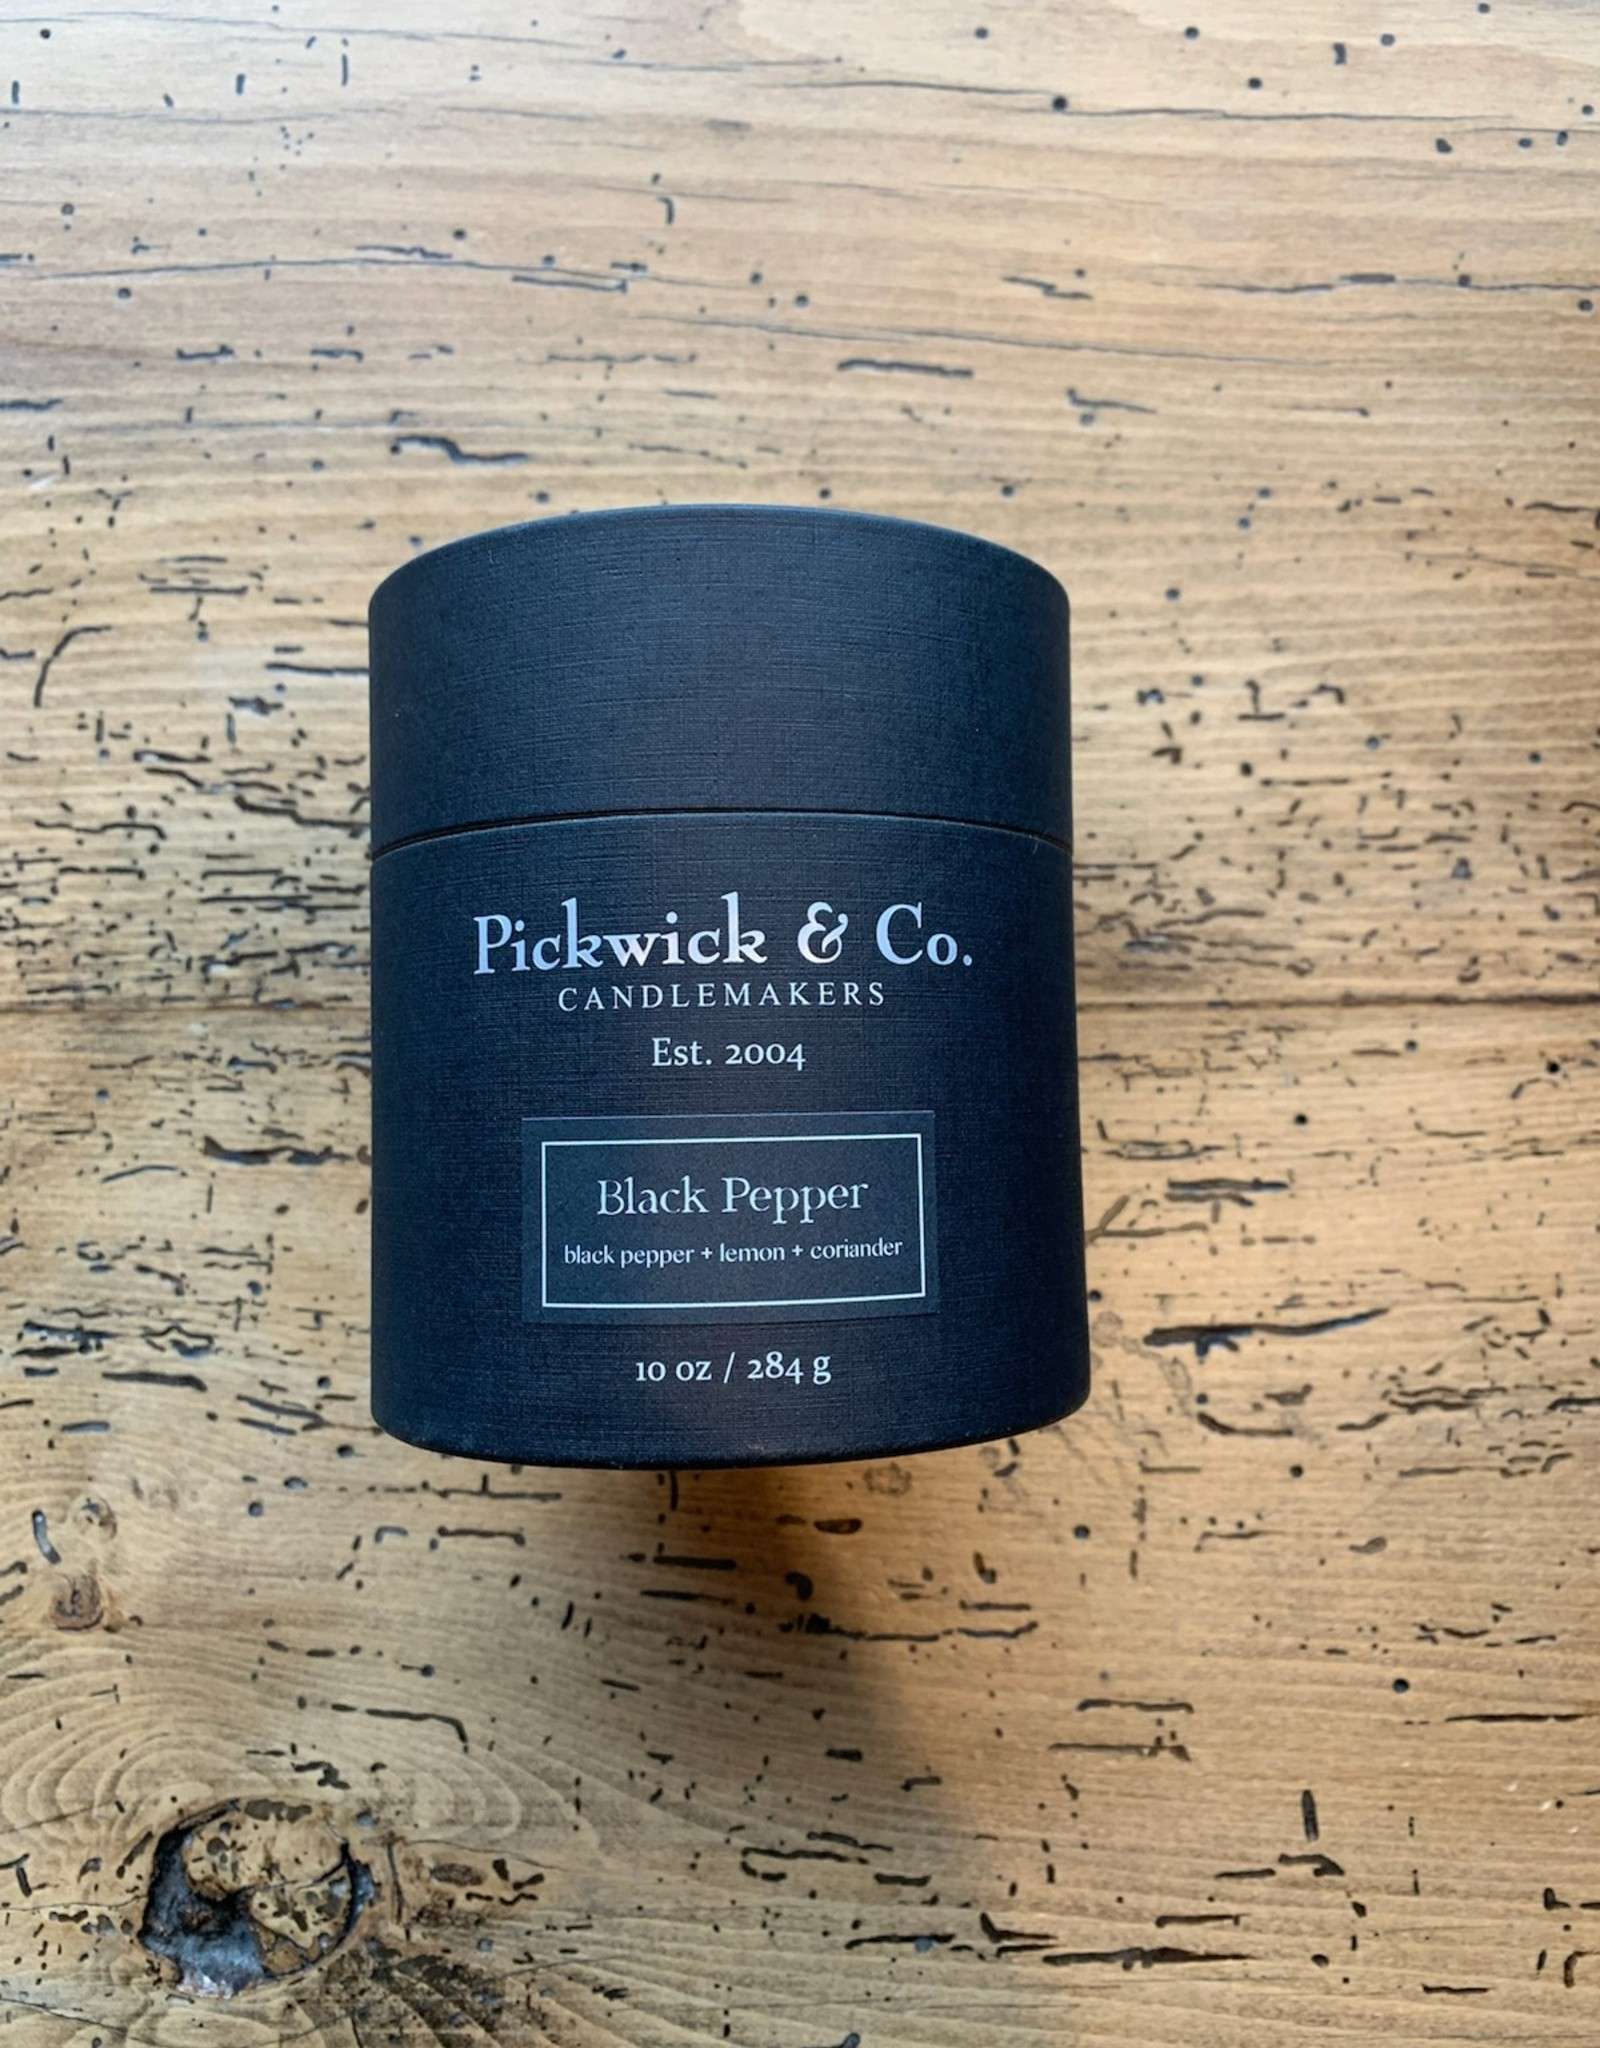 Pickwick & Co. Black Pepper Candle